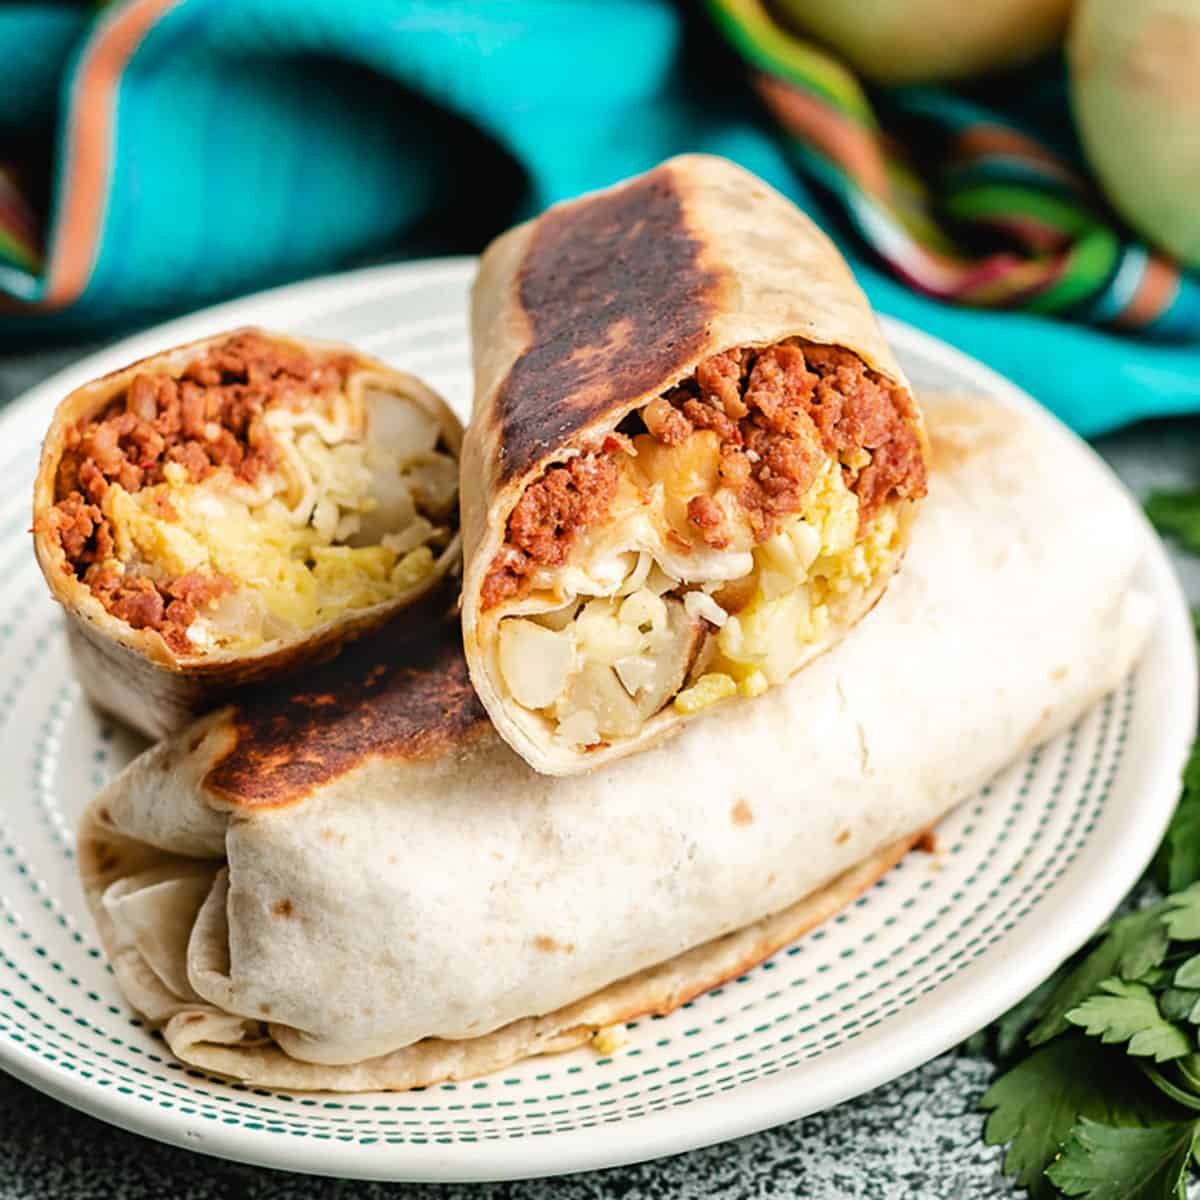 Two chorizo breakfast burritos on a plate.